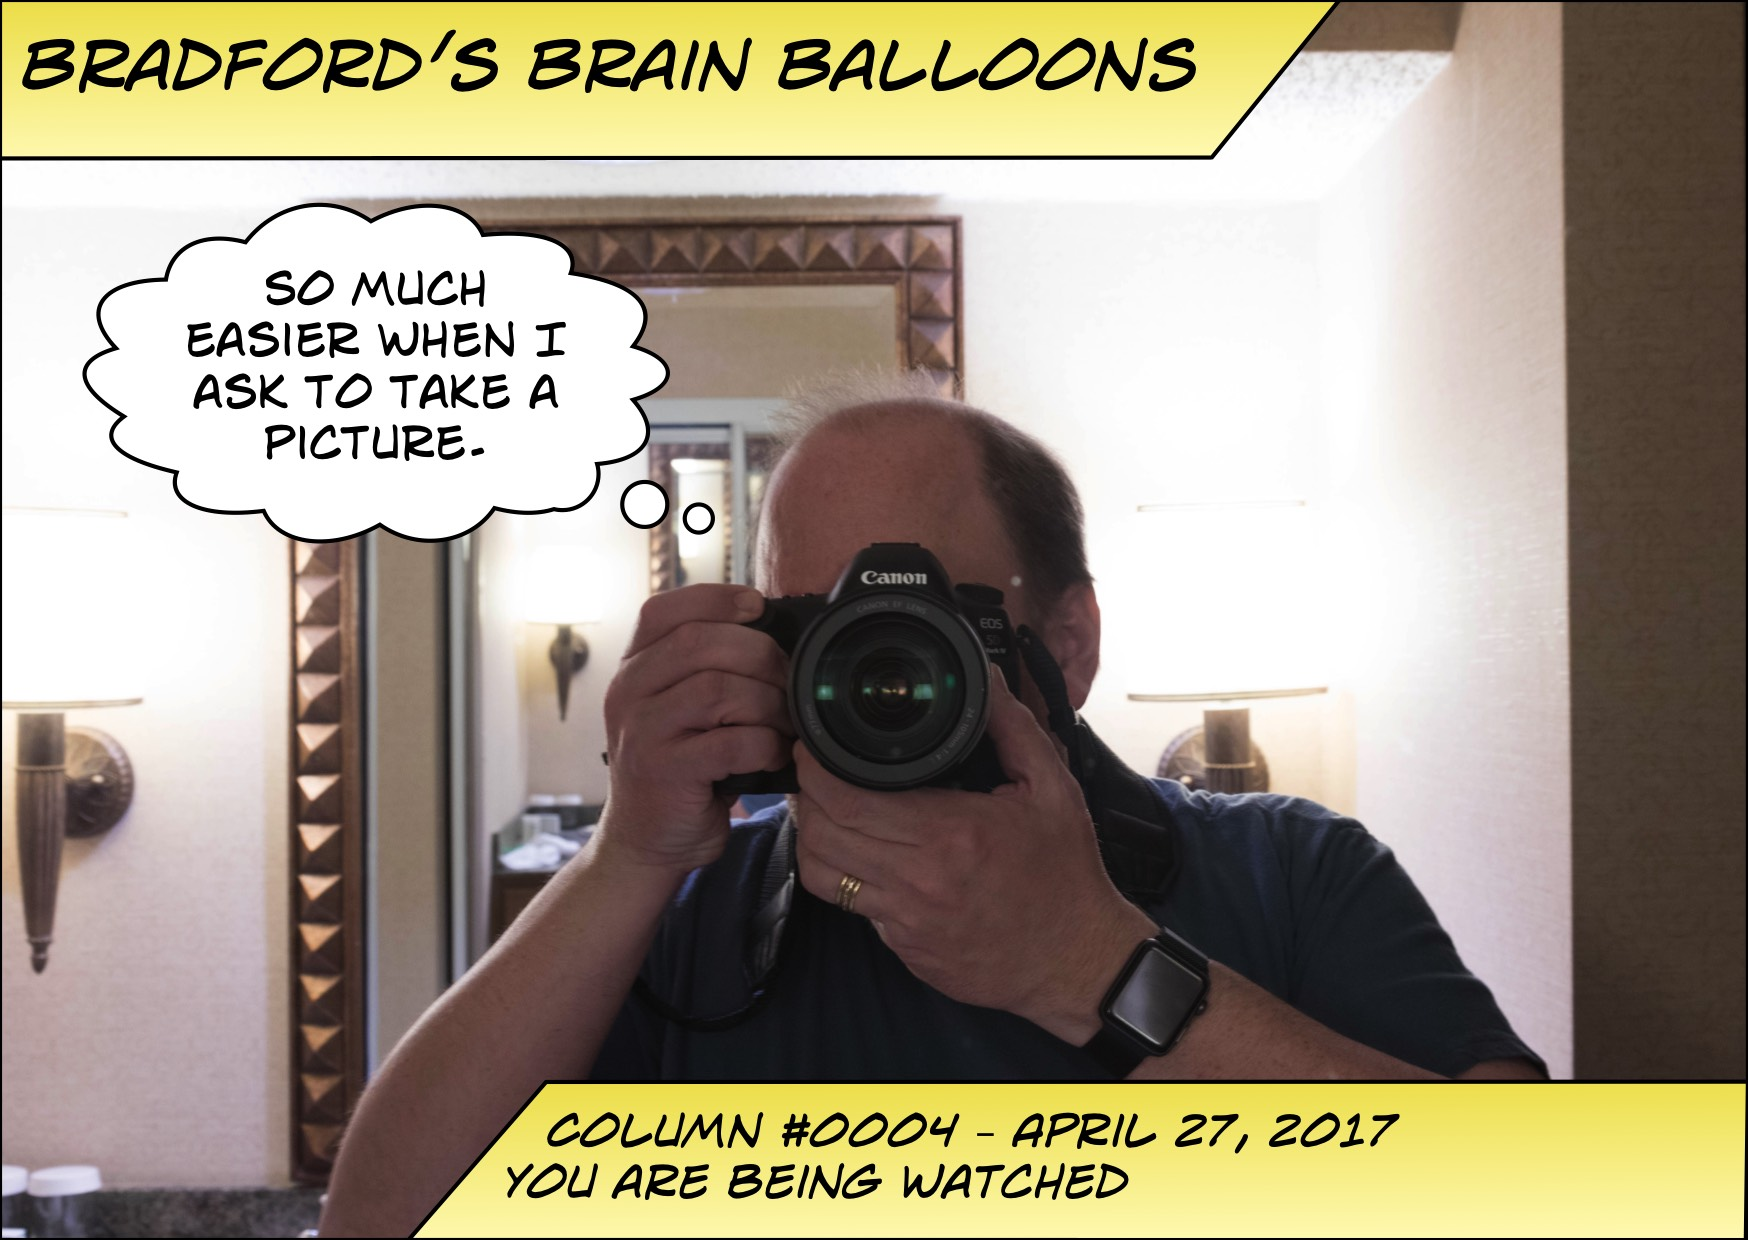 Bradford's Brain Balloons #0004- You are being watched.